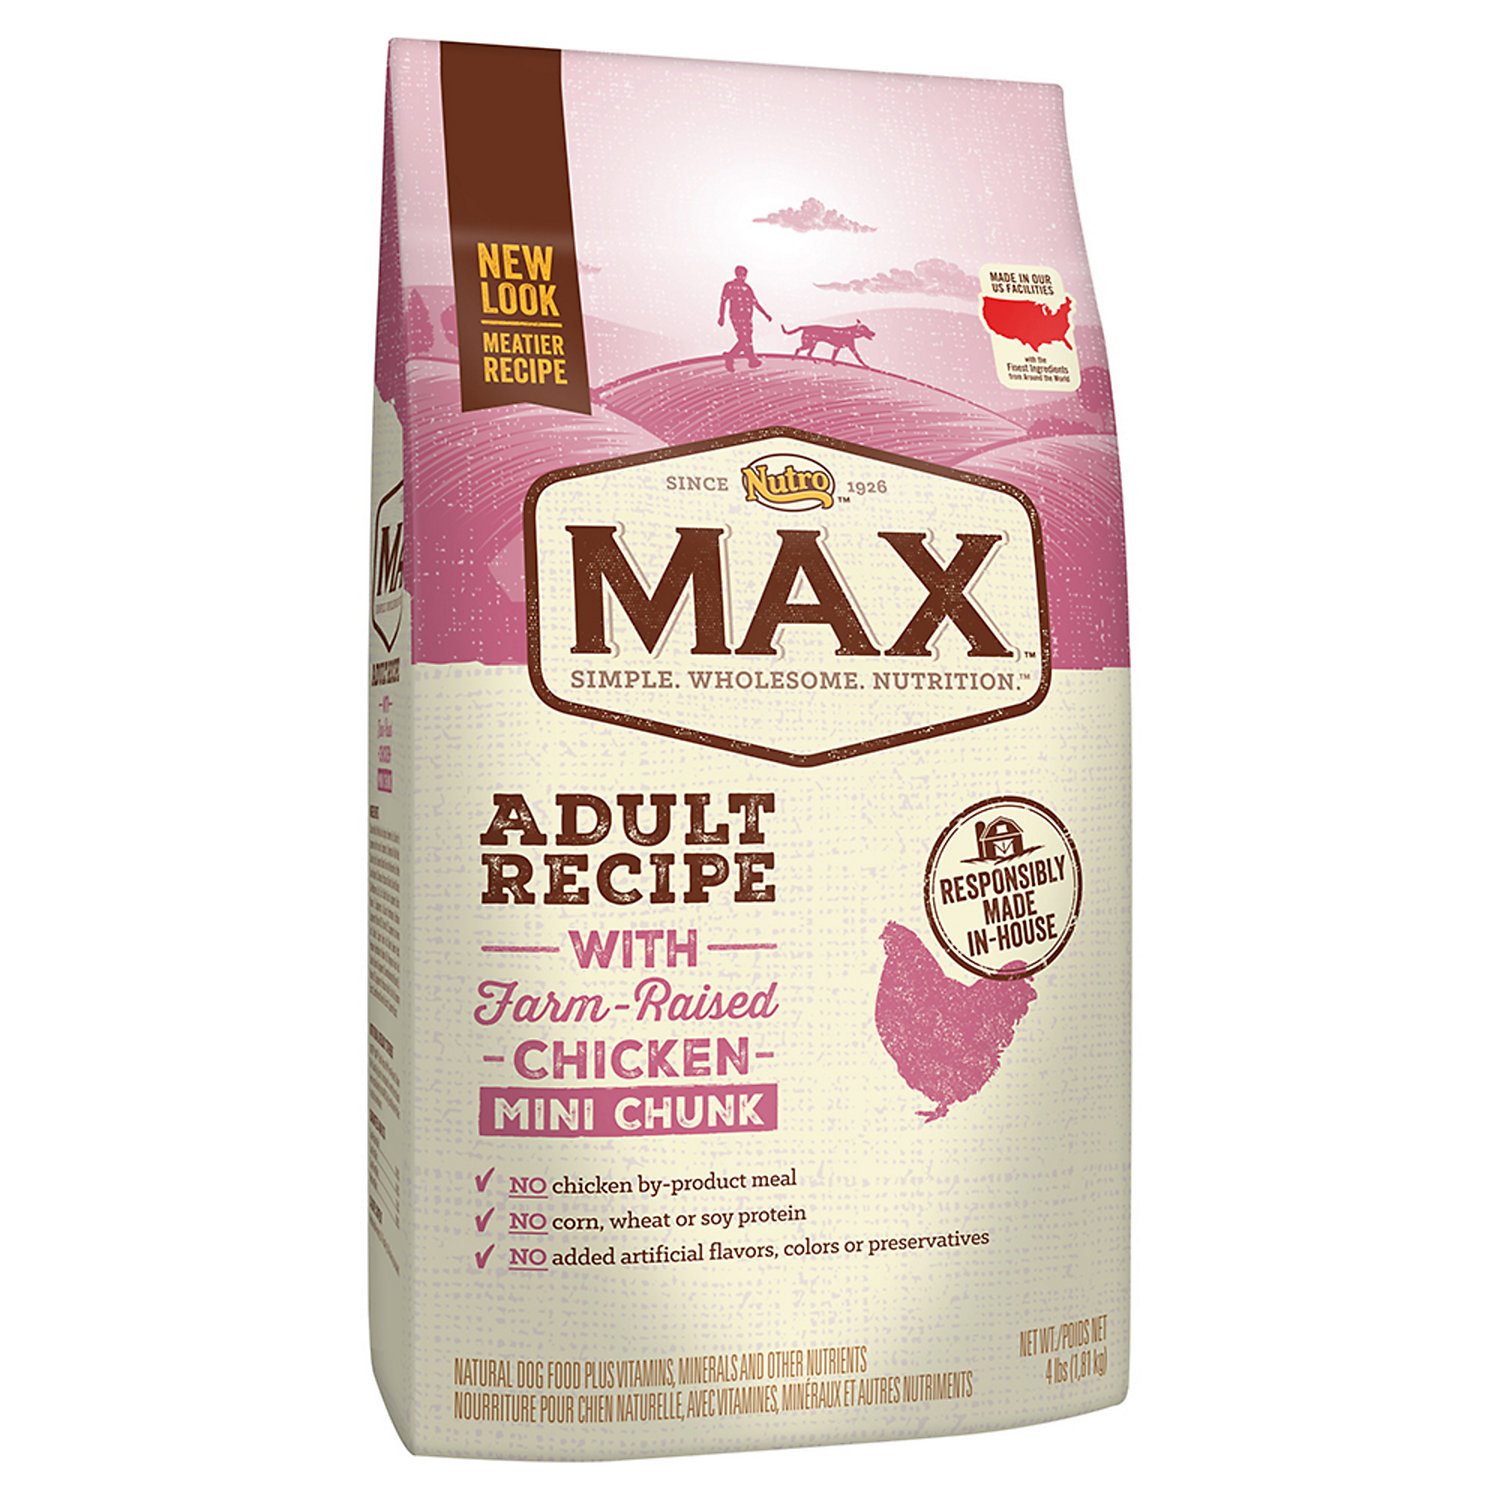 ... UPC 079105119924 product image for Nutro Max Adult Recipe with  Farm-Raised Chicken Mini- ...